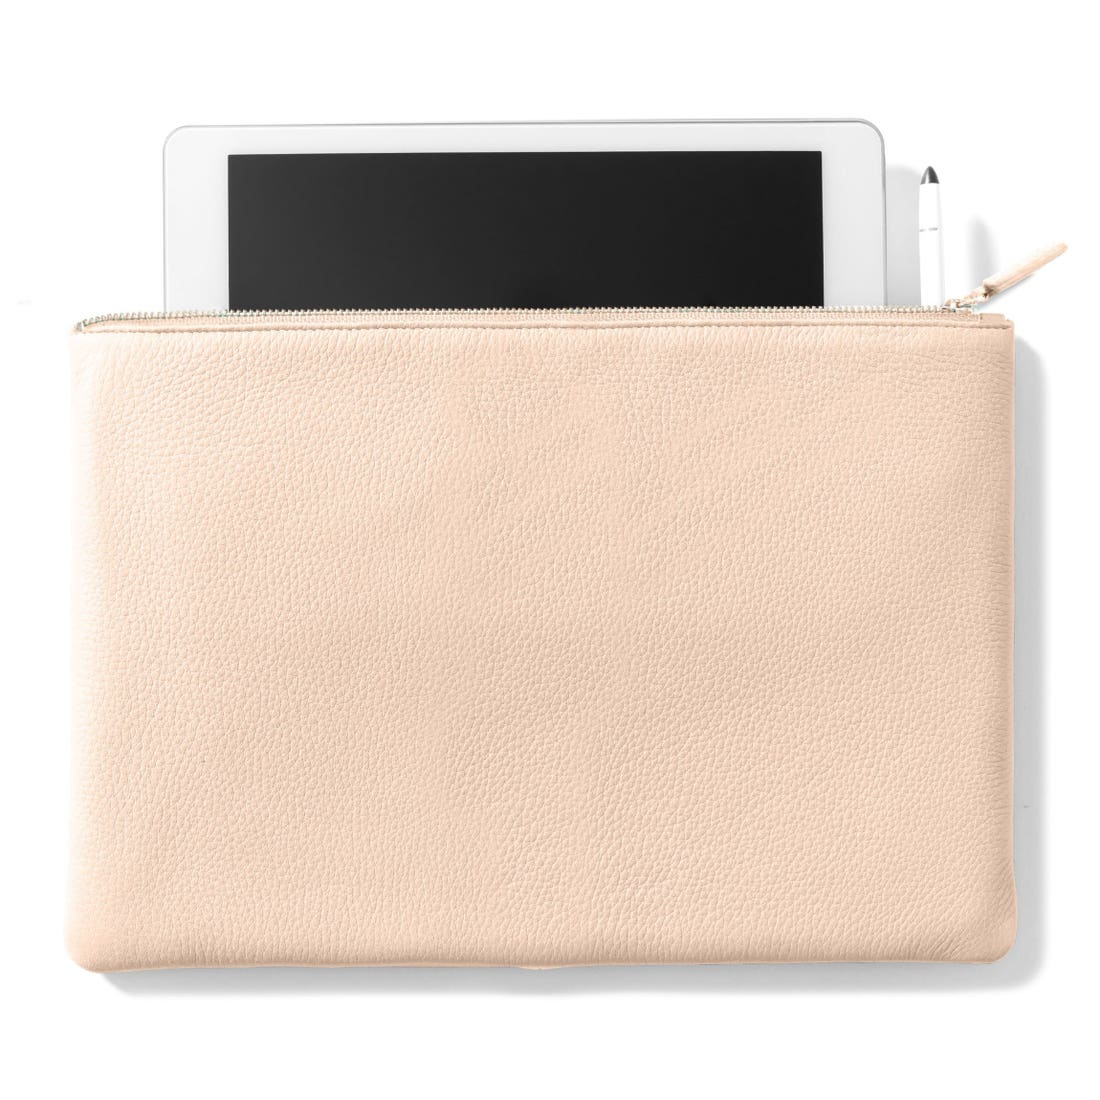 Slim Zippered iPad Case